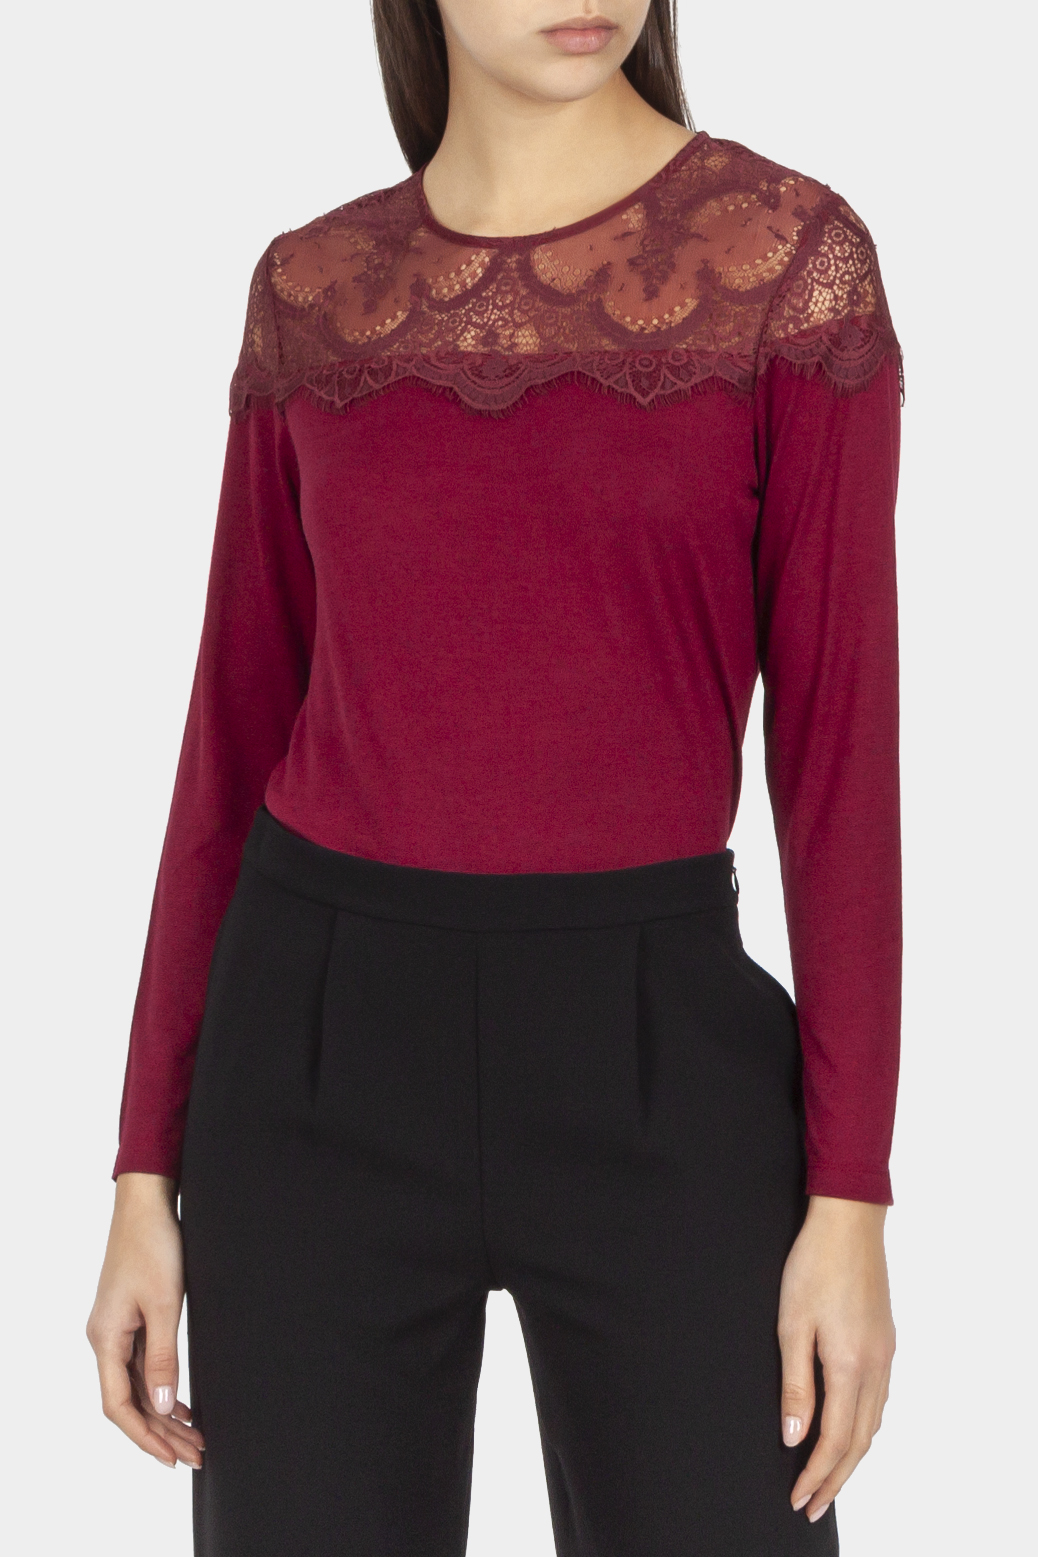 Long sleeved t shirt with lace yoke